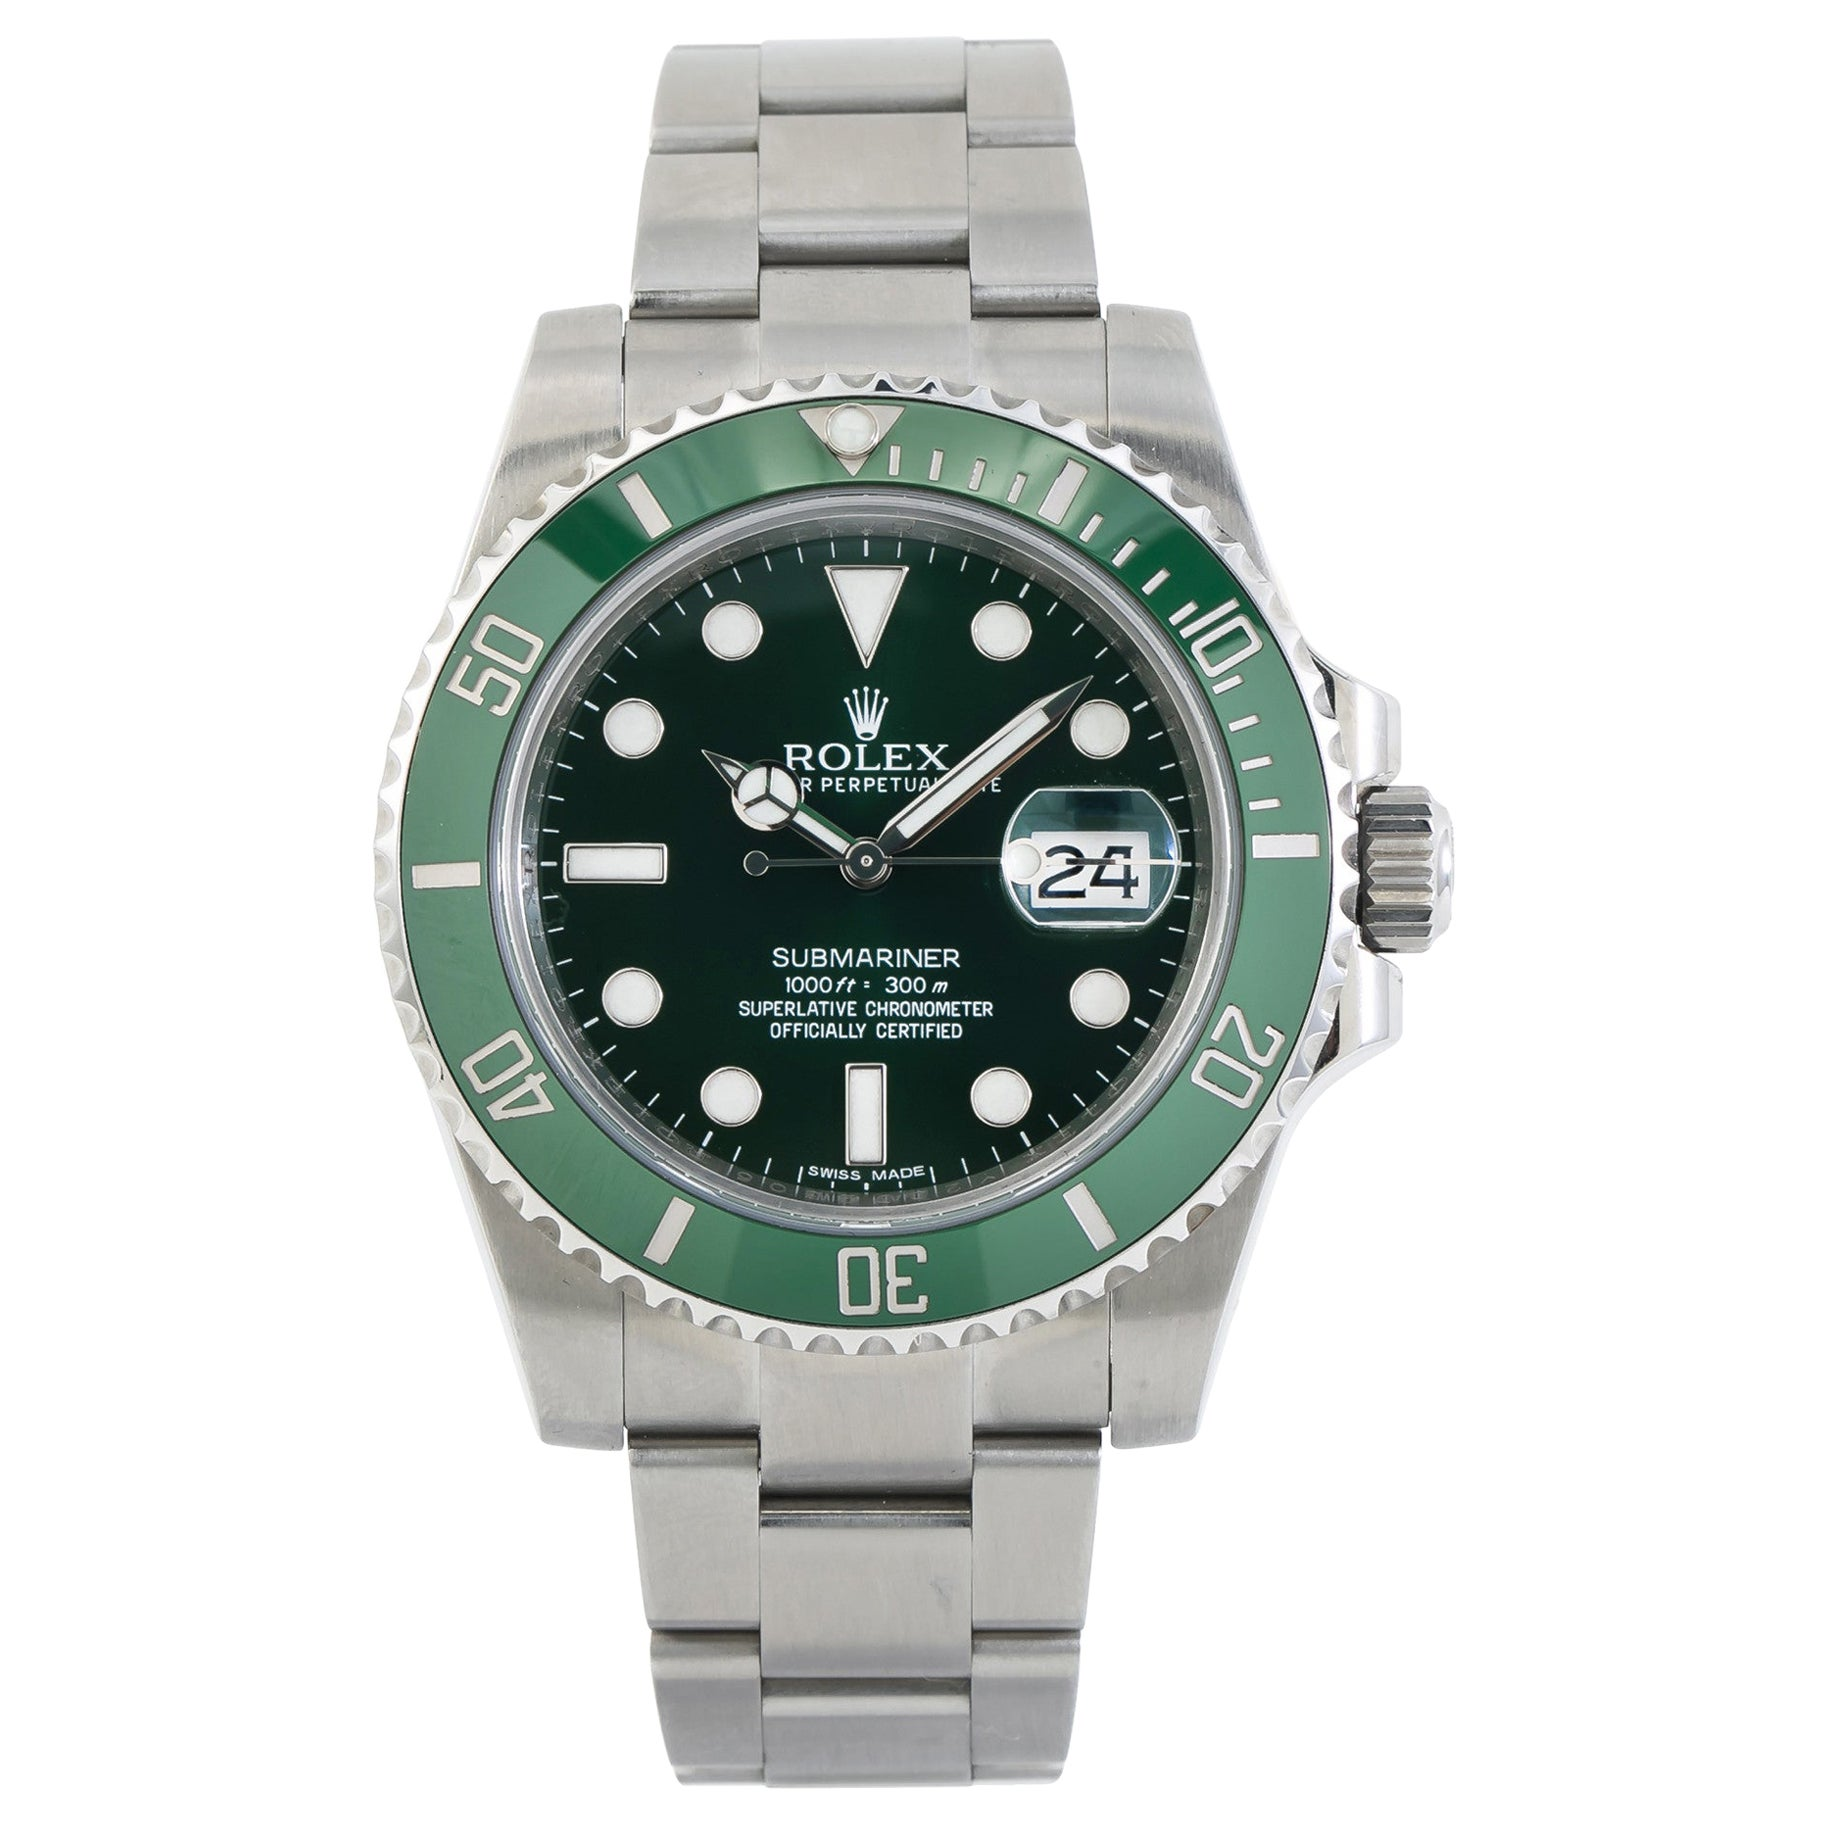 Rolex Submariner Date Green Dial 116610LV SS Auto Men's Watch with Papers